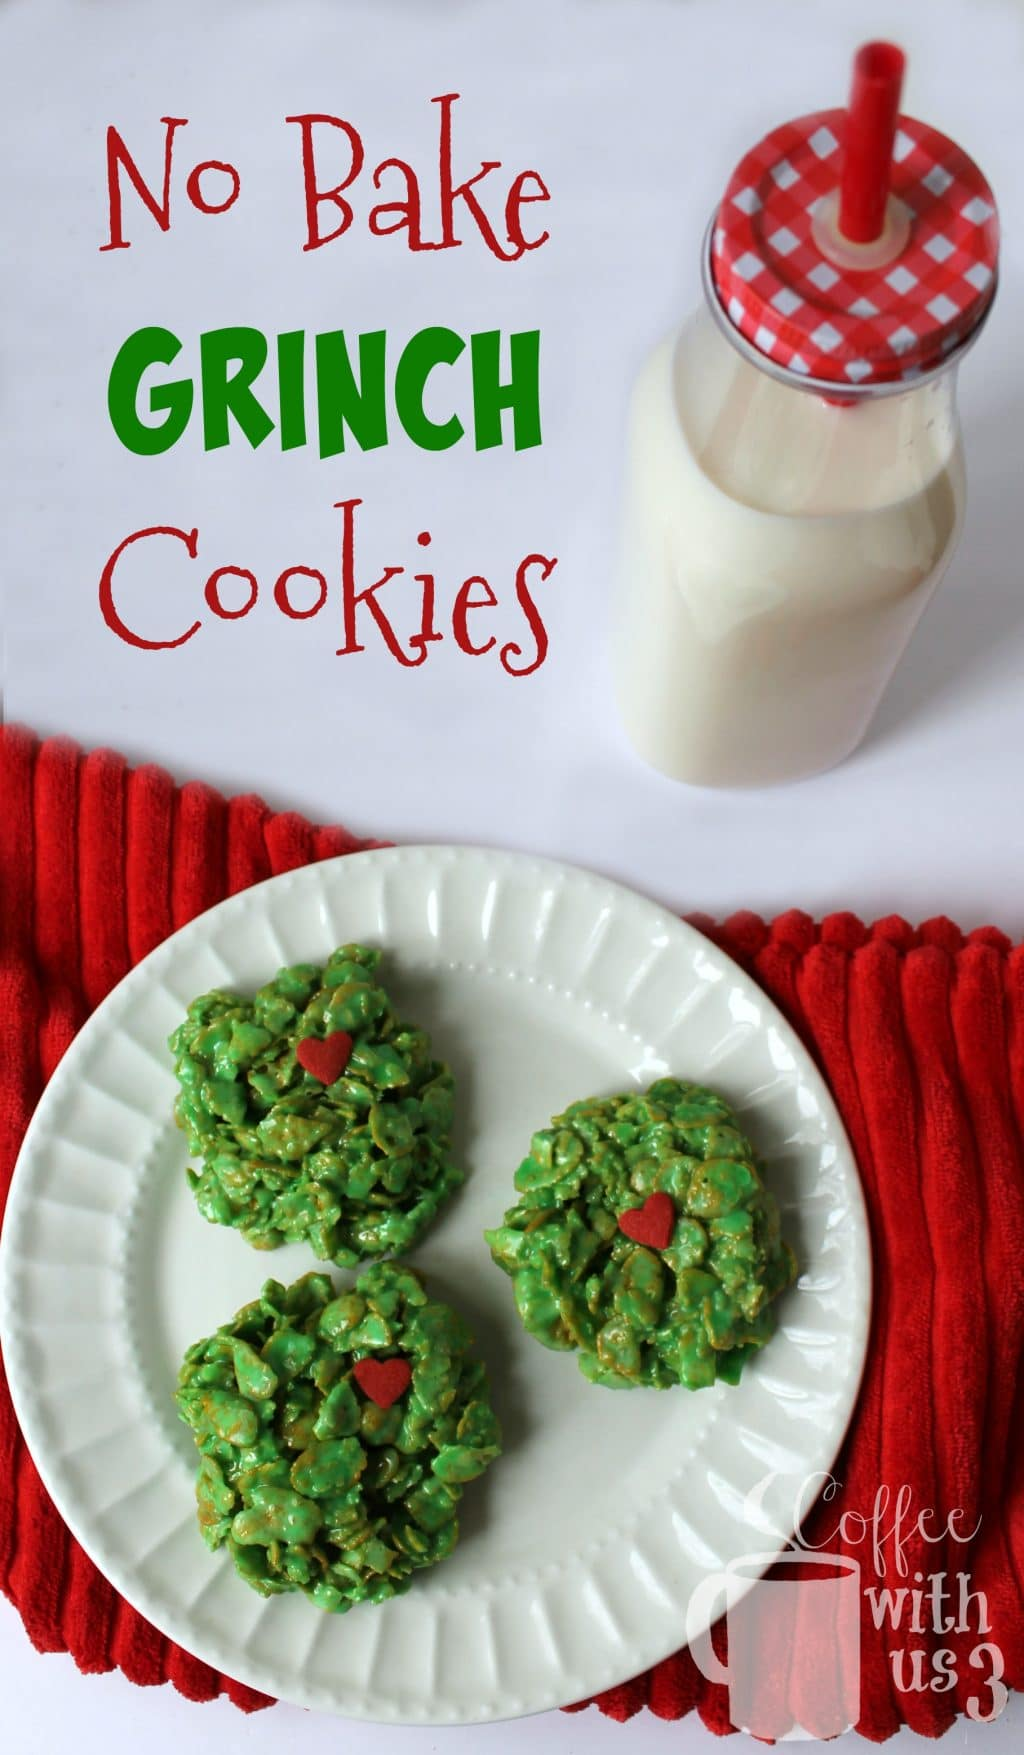 Quick and easy to make, these No Bake Grinch Cookies will be a huge hit at your Christmas gatherings!